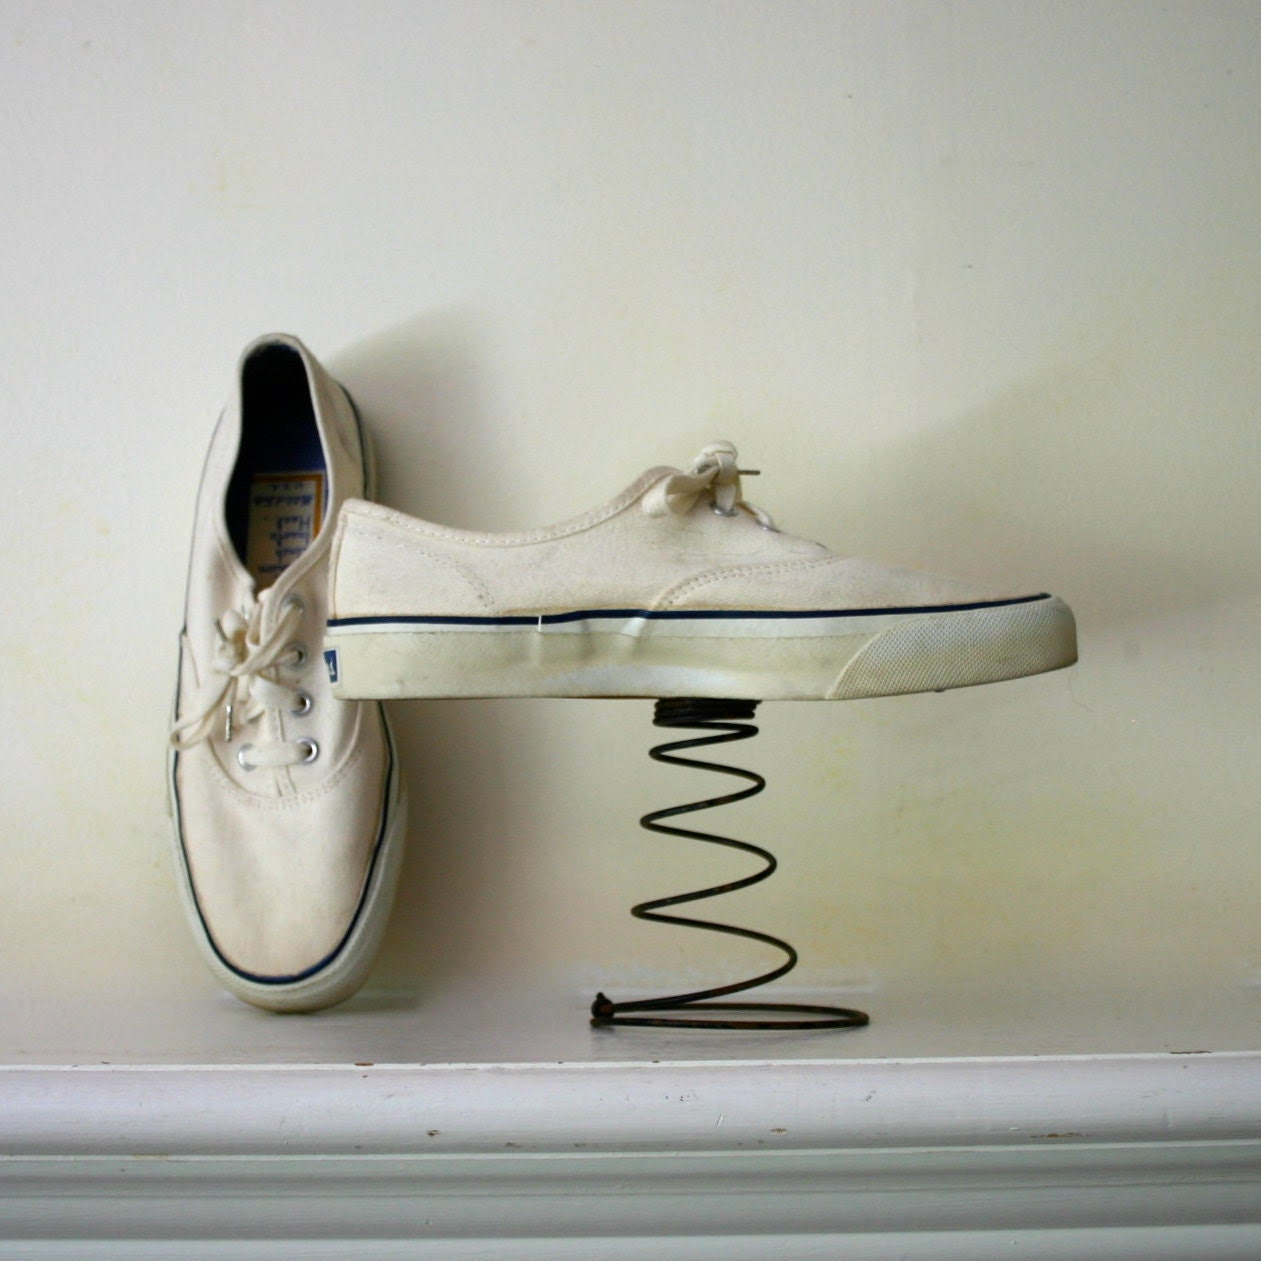 cool Vintage Sears sneakers great for boating or a walk in the park